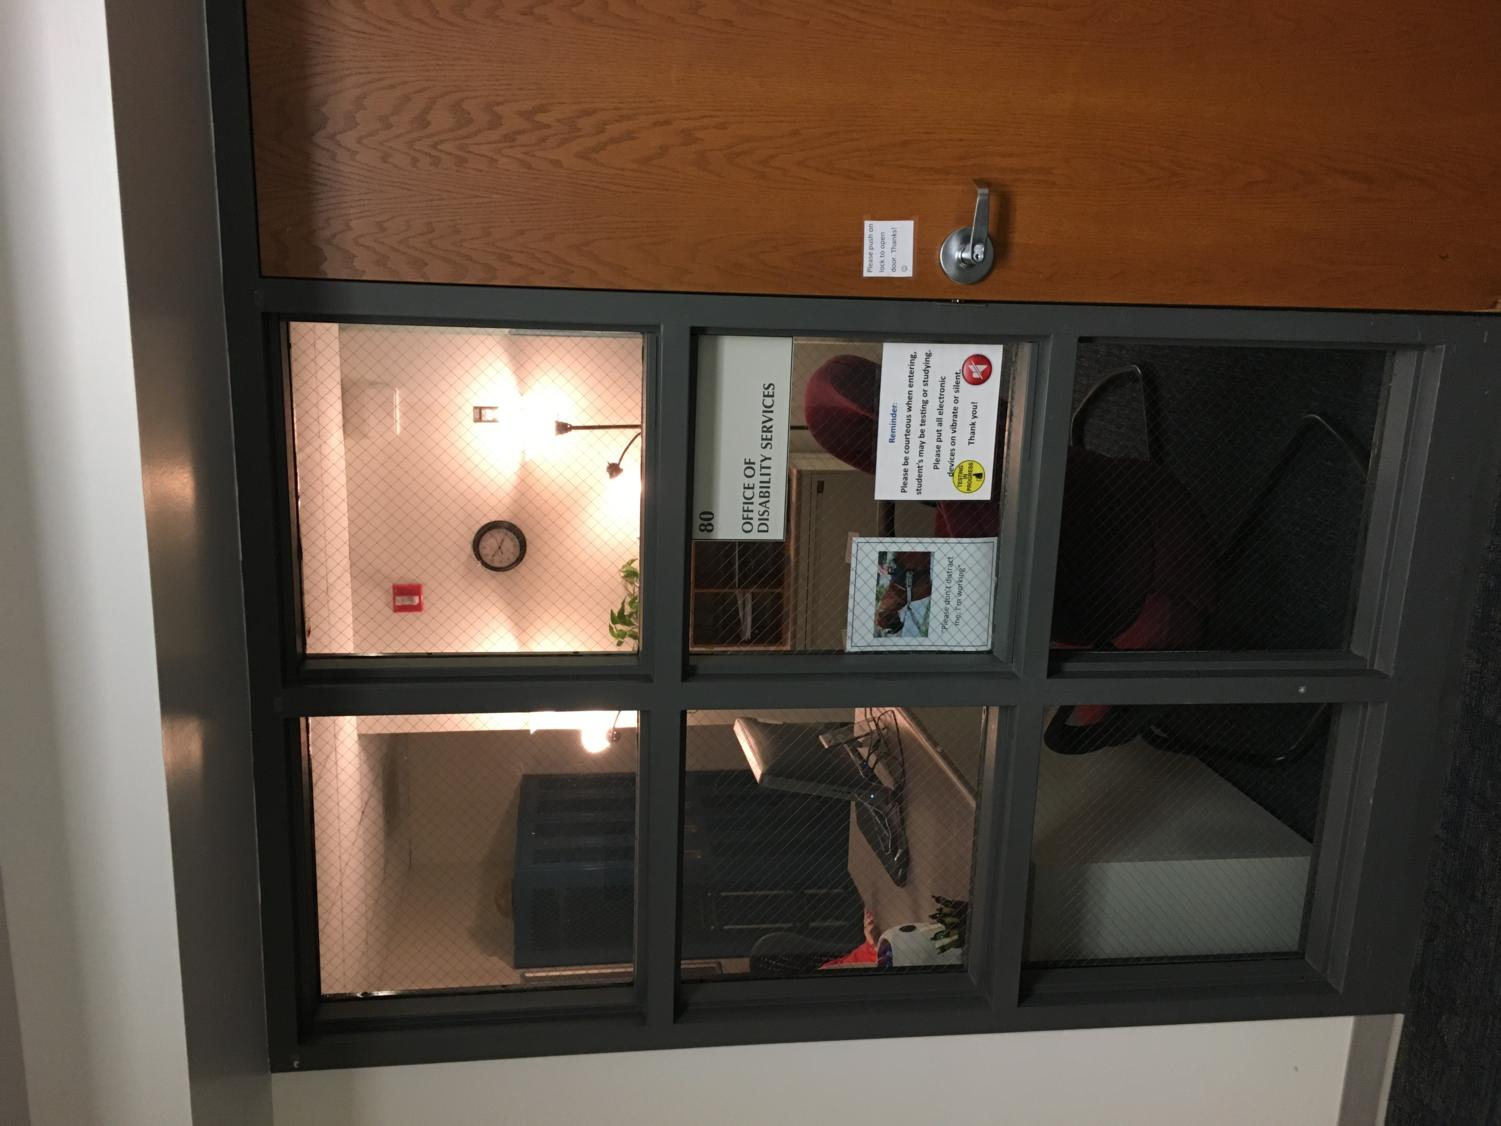 The Office of Disability Services is located in the Human Resources Building